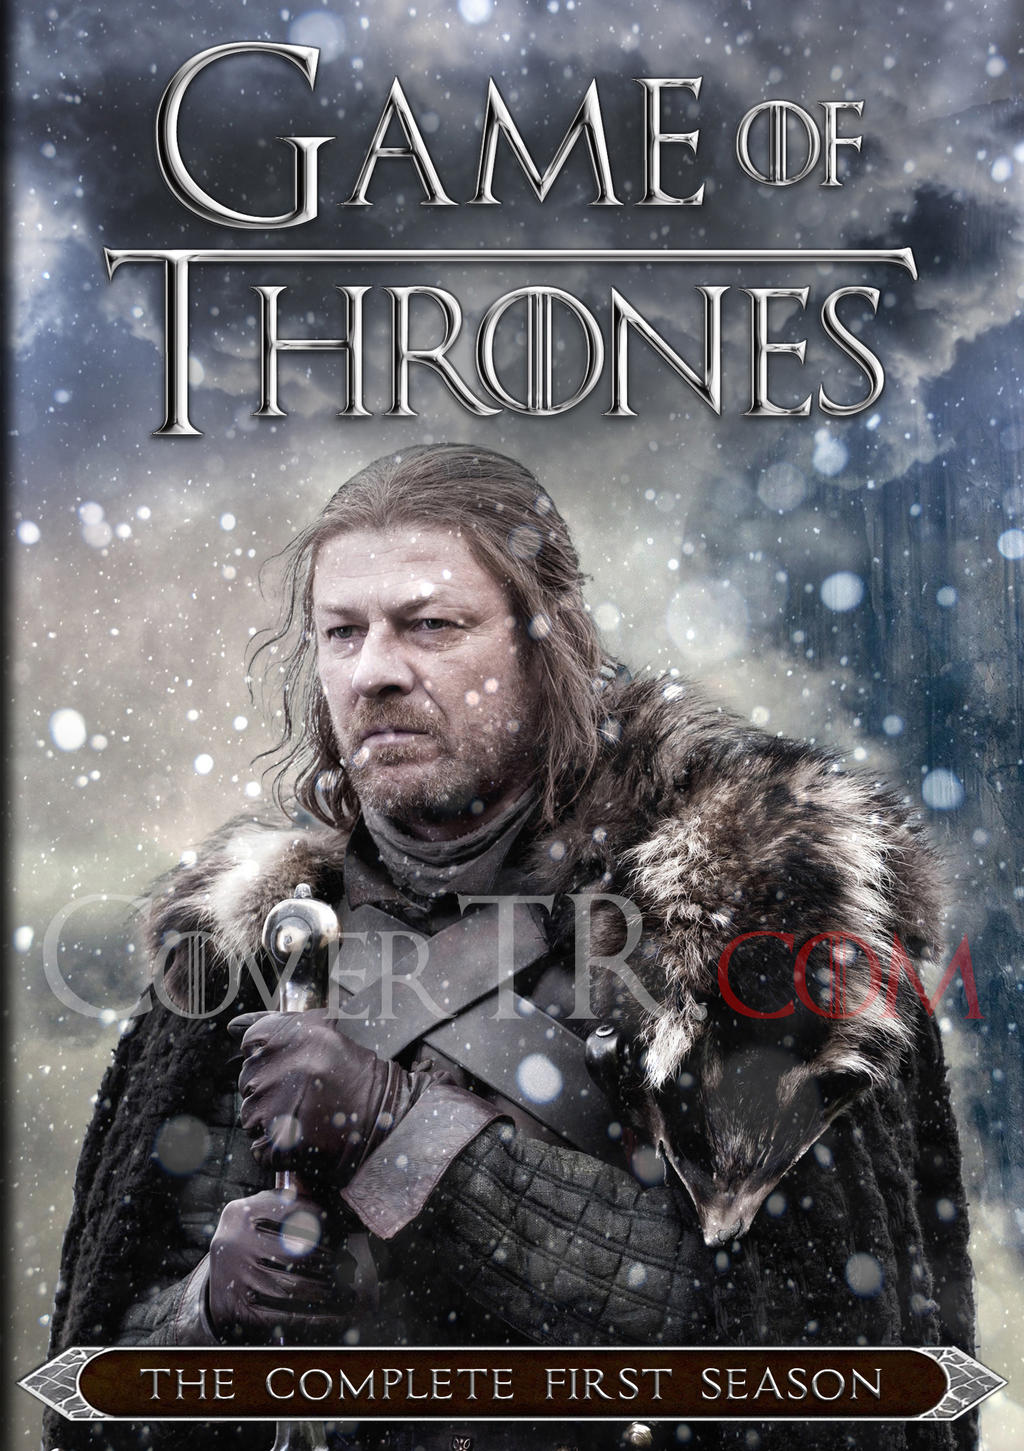 Game of Thrones - Season 1 Dvd Poster by CoverTR on DeviantArt